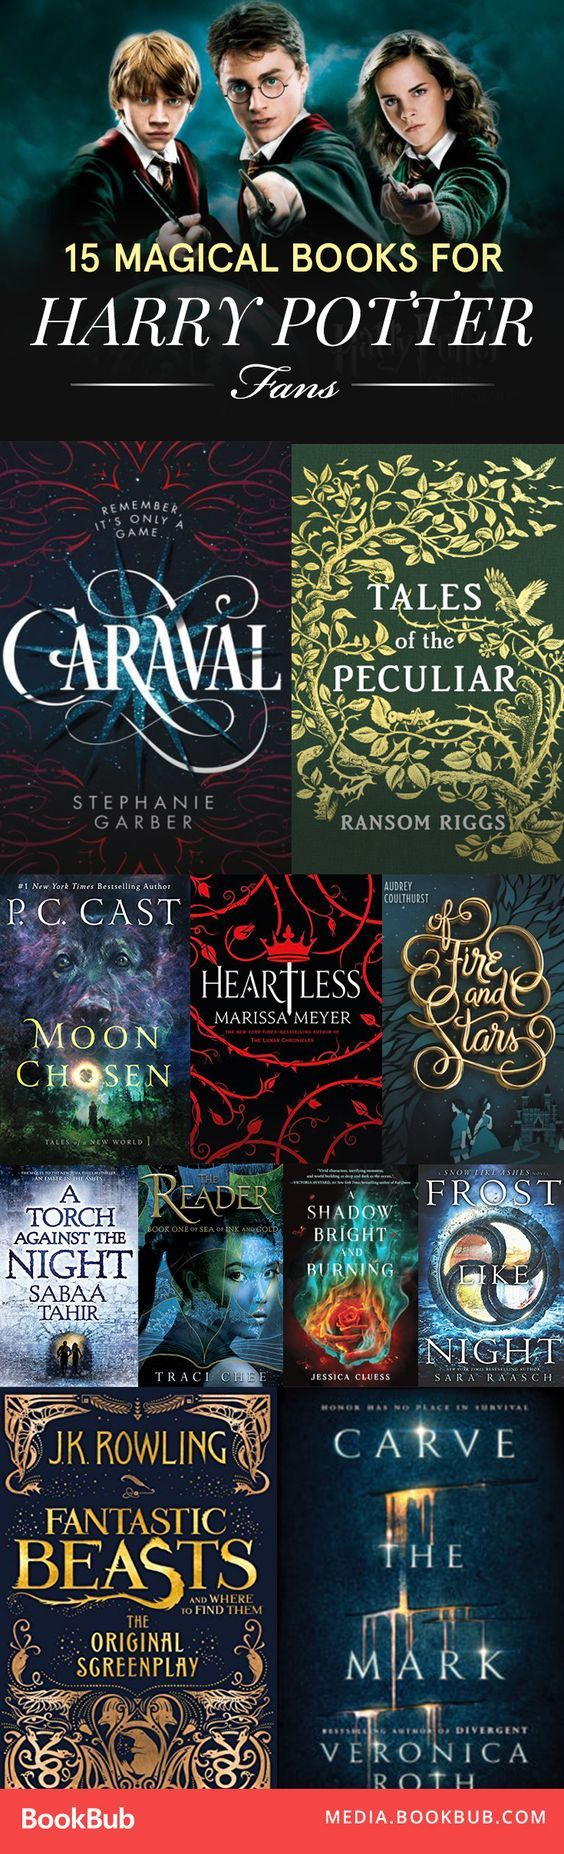 Loved the Harry Potter books? Here are 15 magical books to read next.